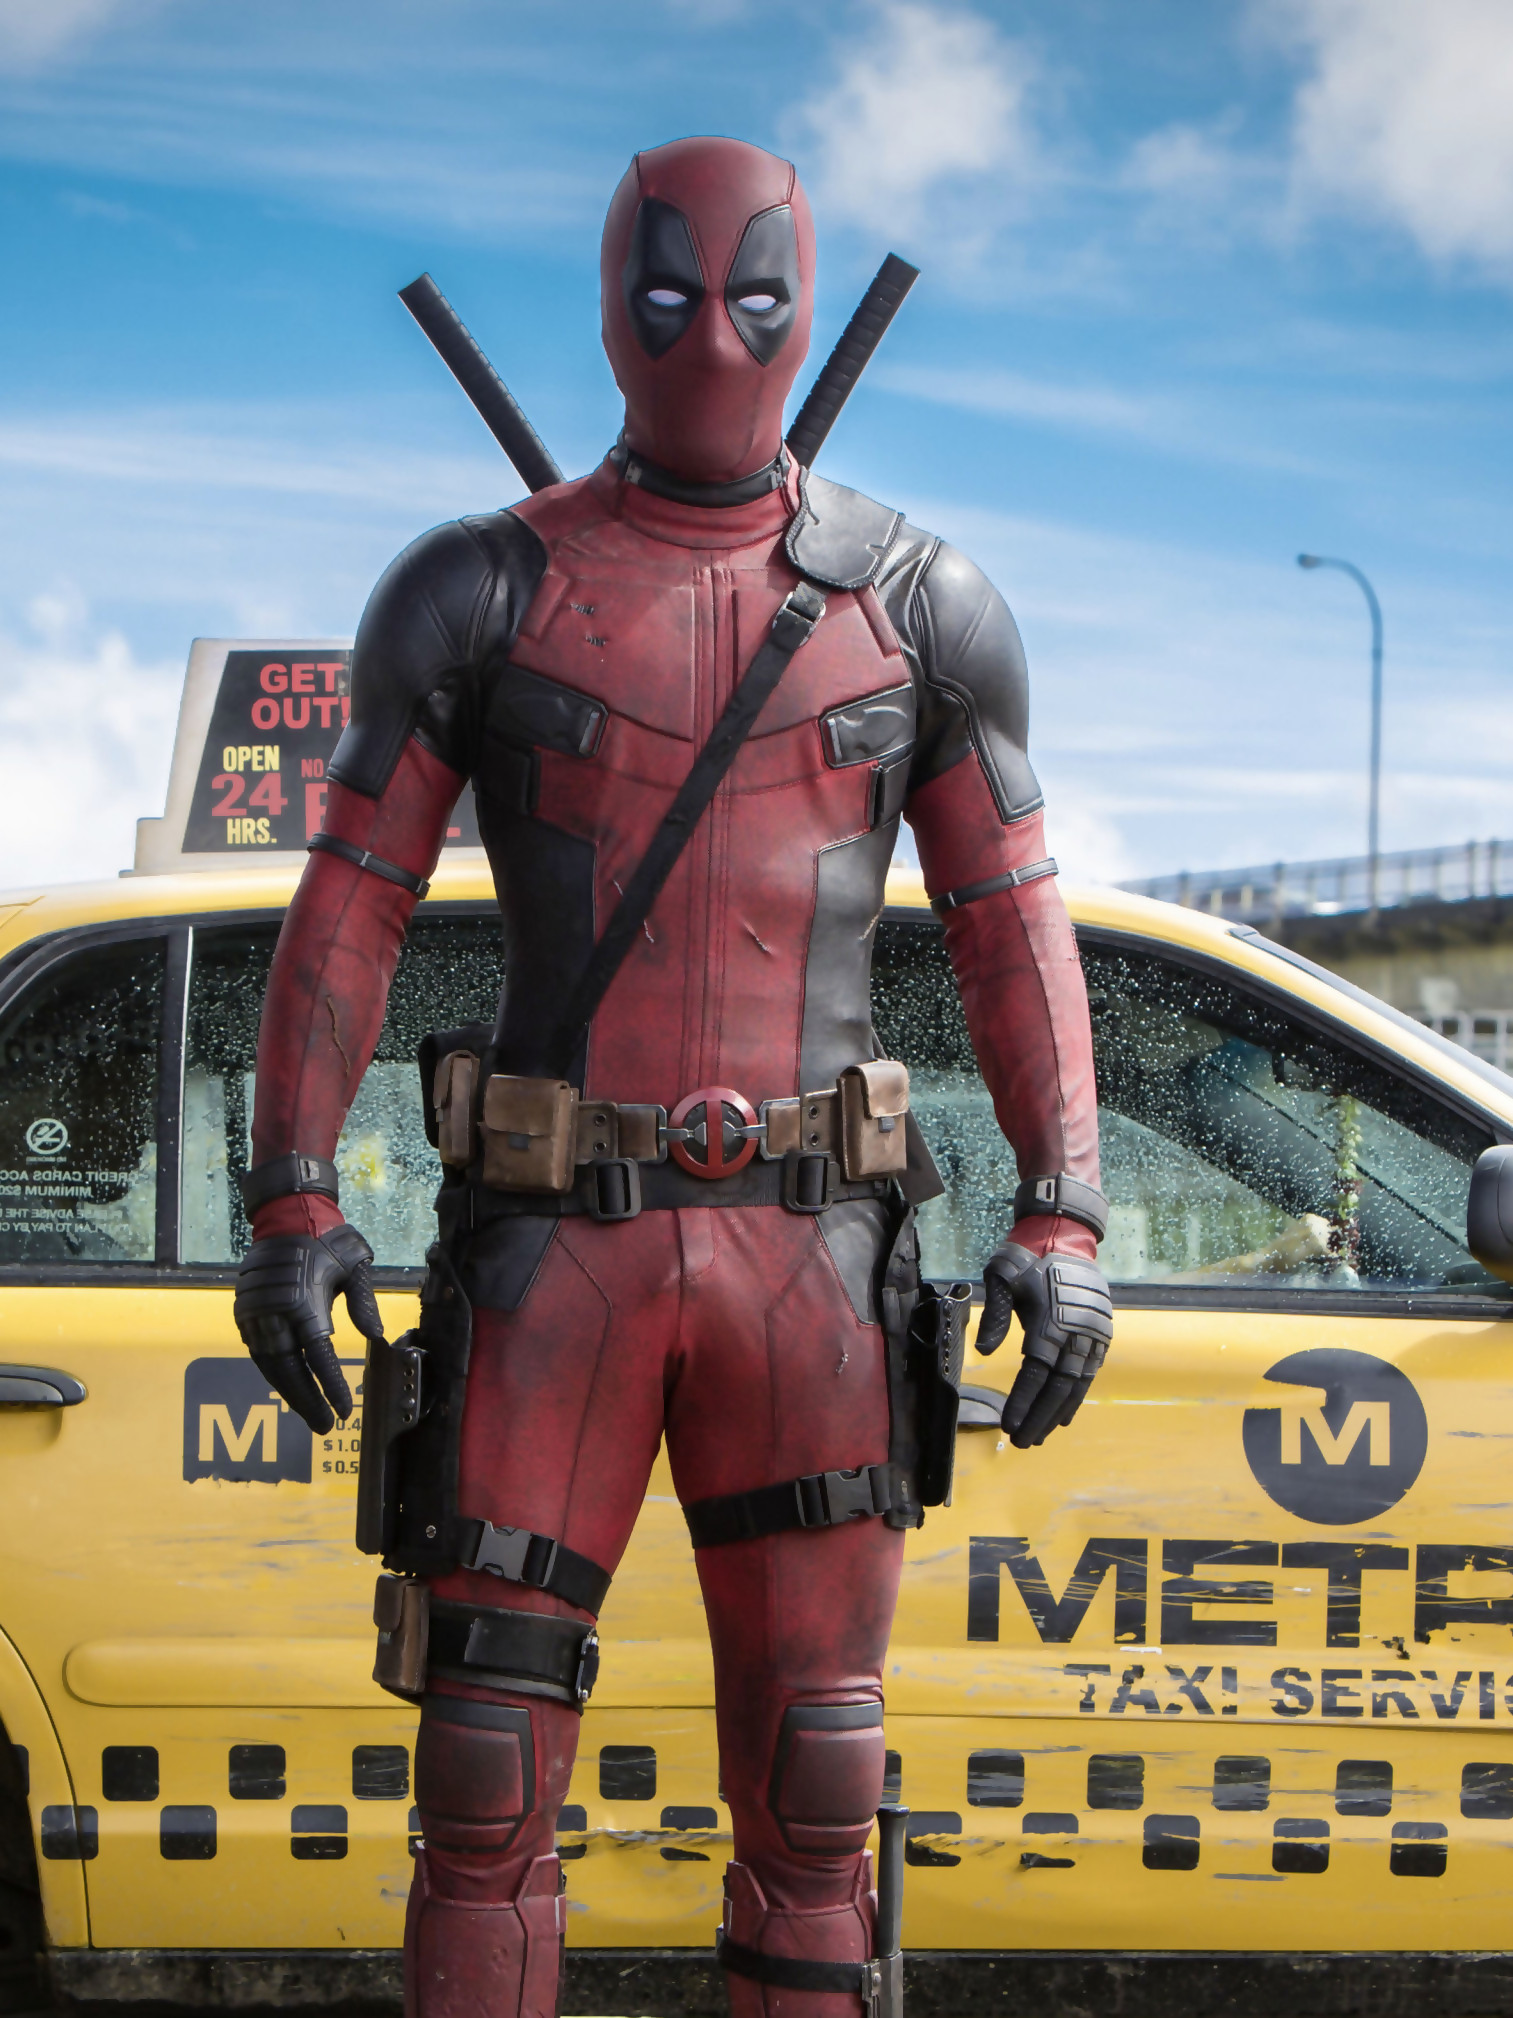 deadpool-photo-559688bdba5d8.jpg